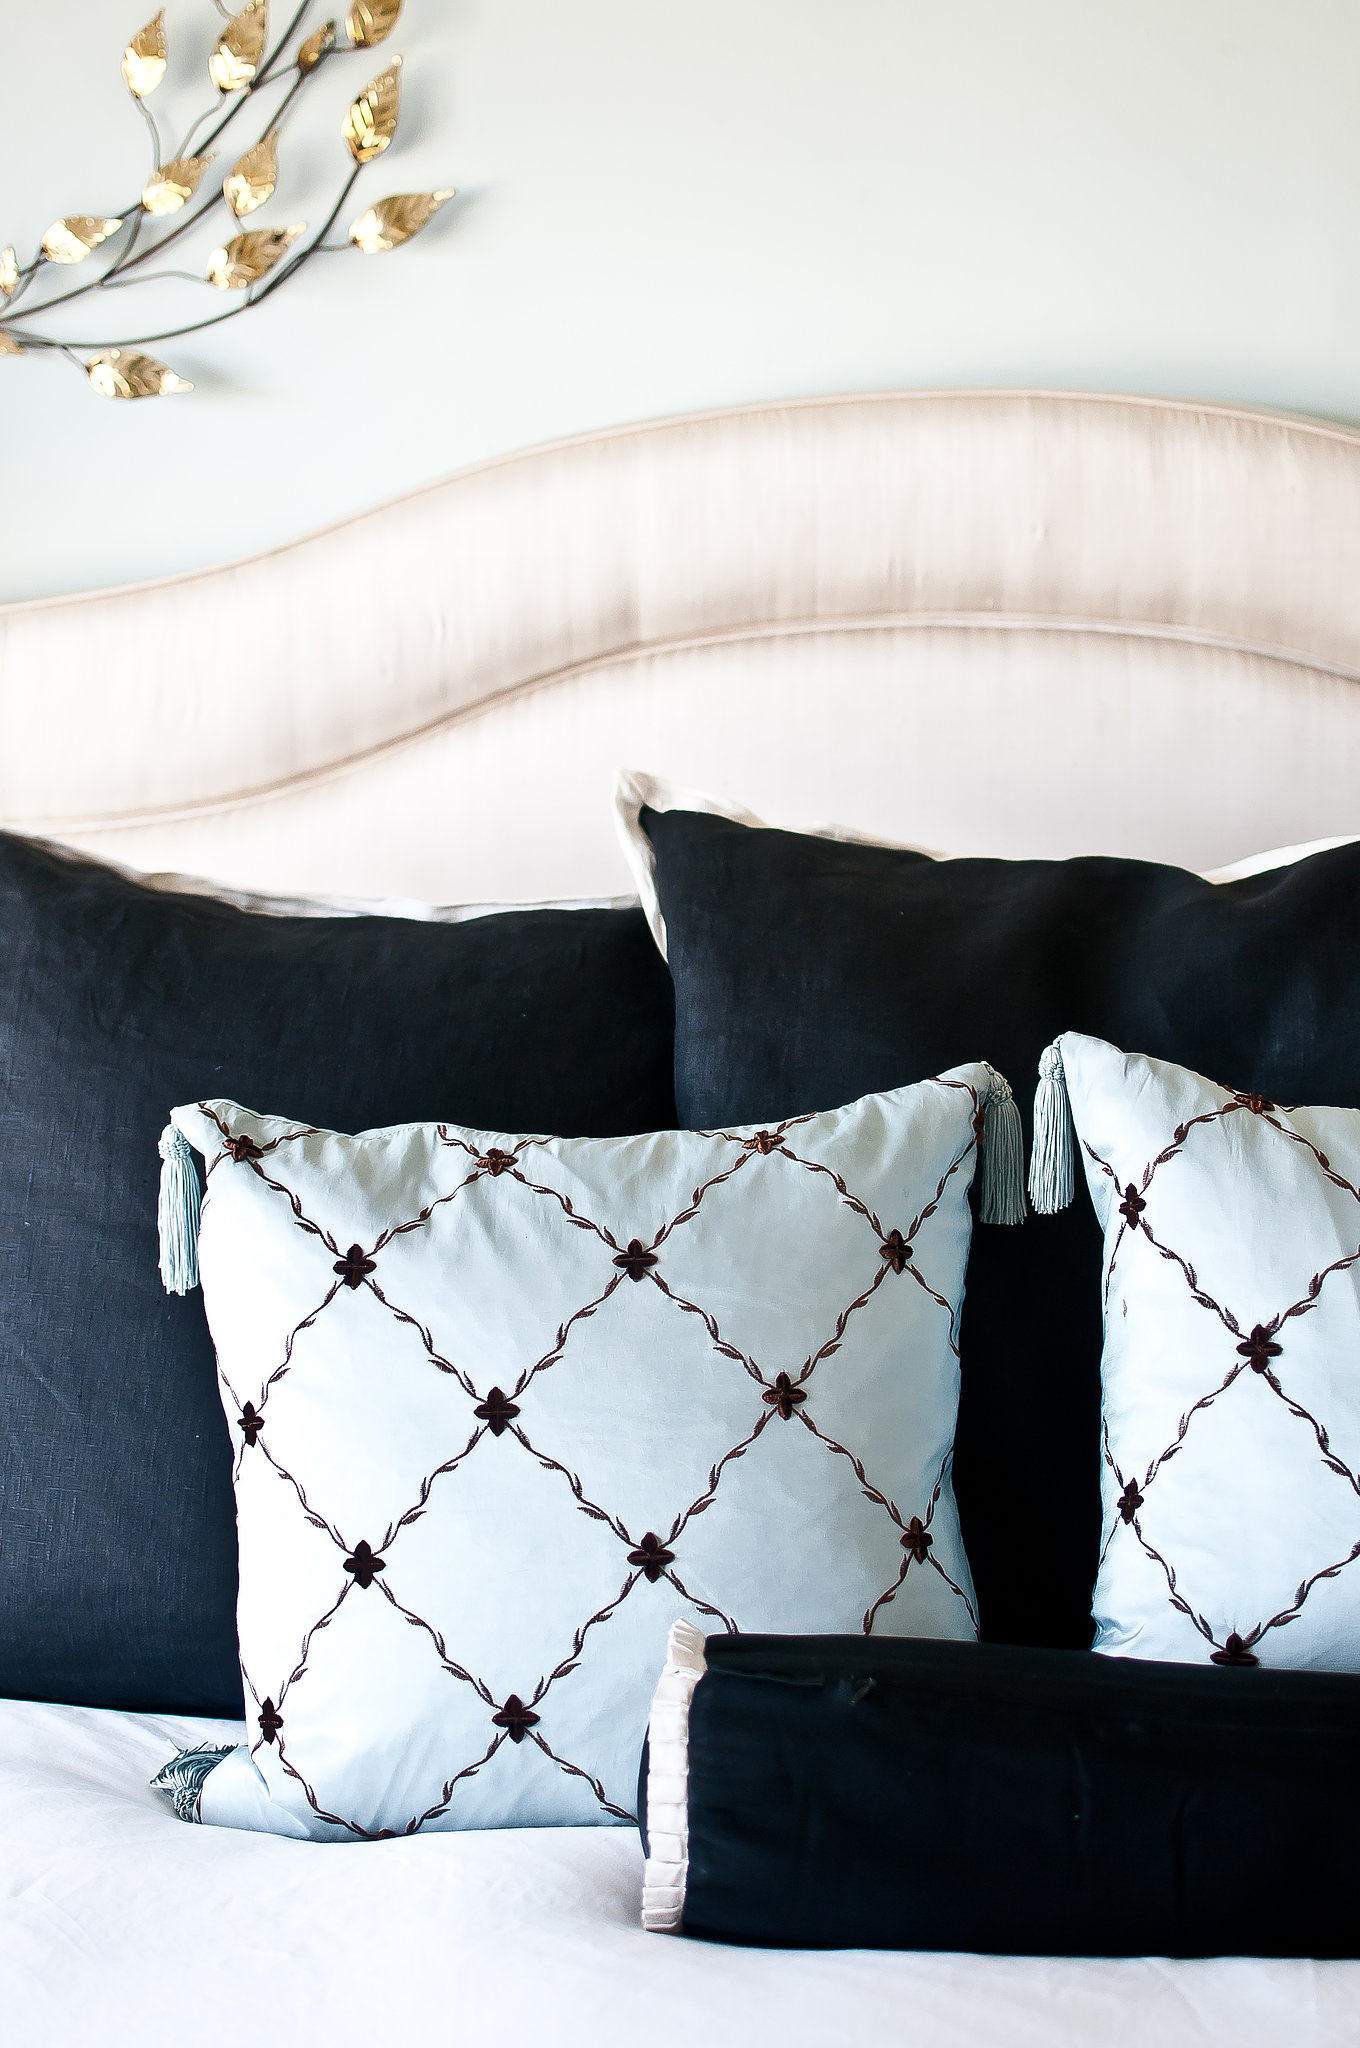 Black and powder-blue pillows contrast beautifully with the glamorous headboard in Lynn's bedroom. Source: Kassie Borreson